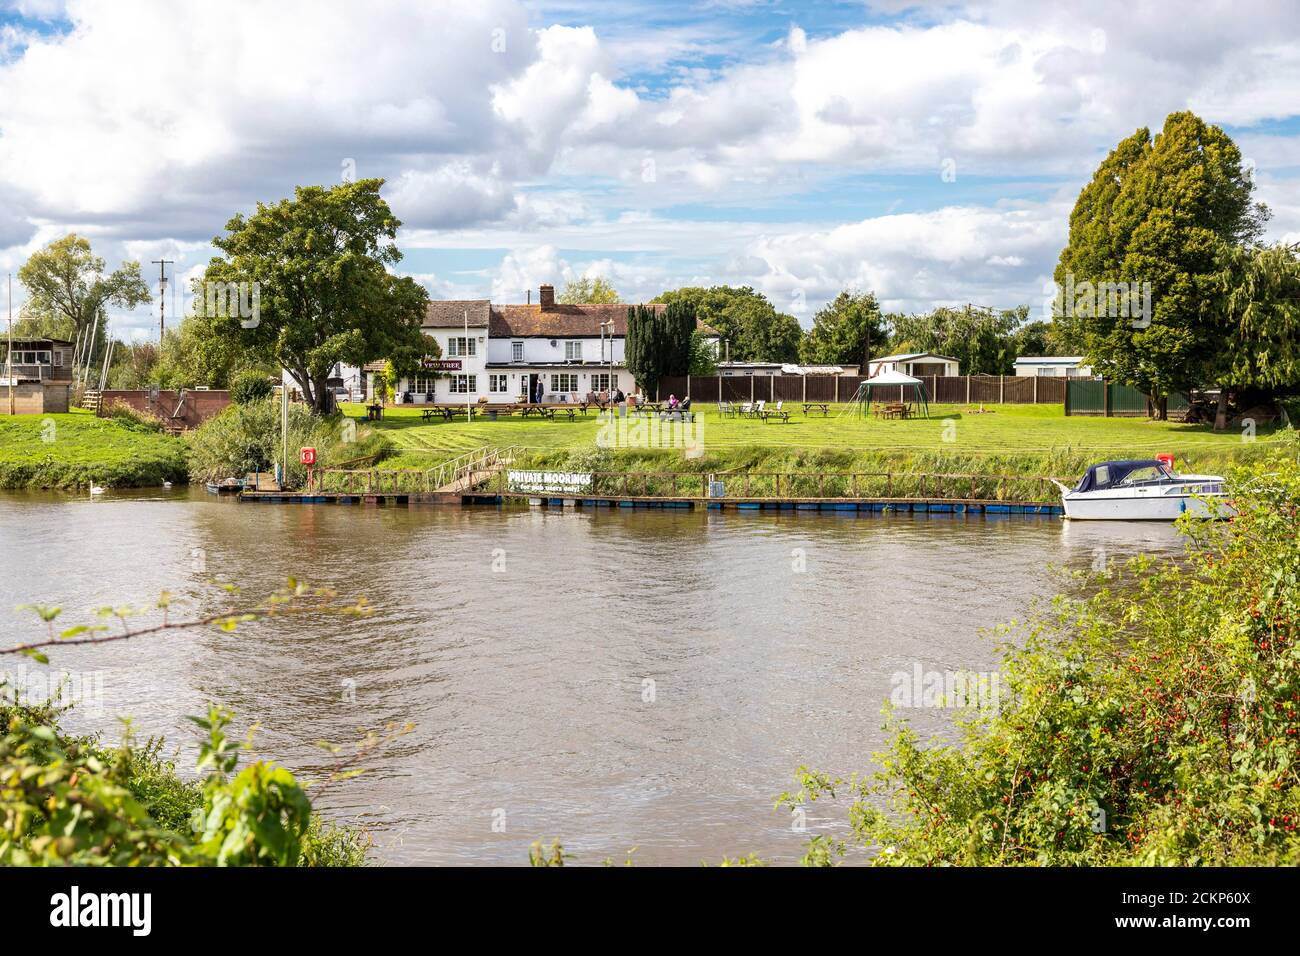 The Yew Tree Inn (Old Ferry Inn) on the banks of the River Severn at Chaceley, Gloucestershire UK Stock Photo